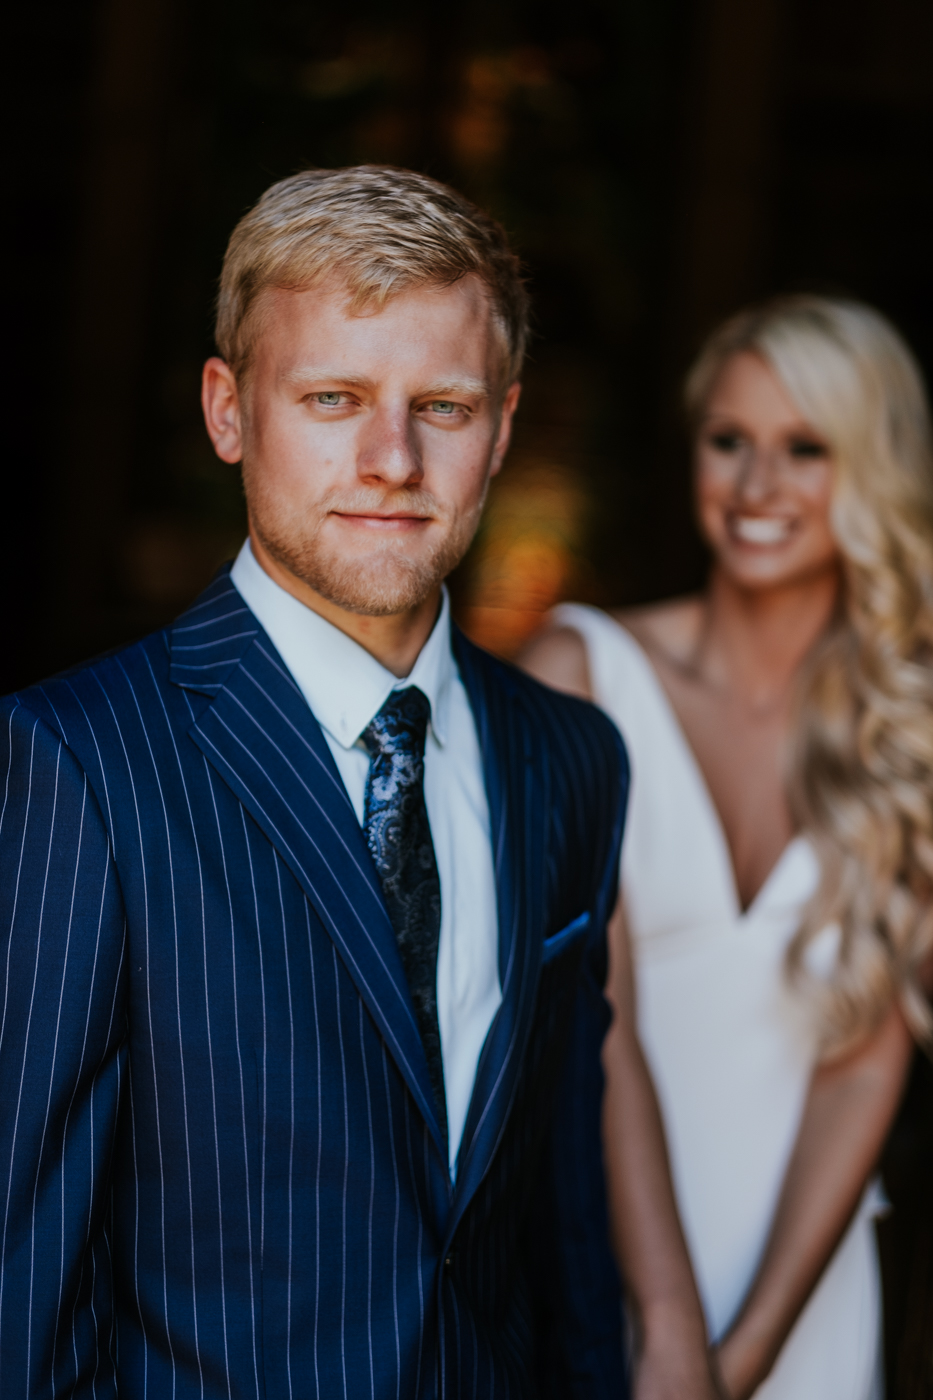 Sierra+Jacob.Wedding.Blog©mileswittboyer.com2018-50.jpg